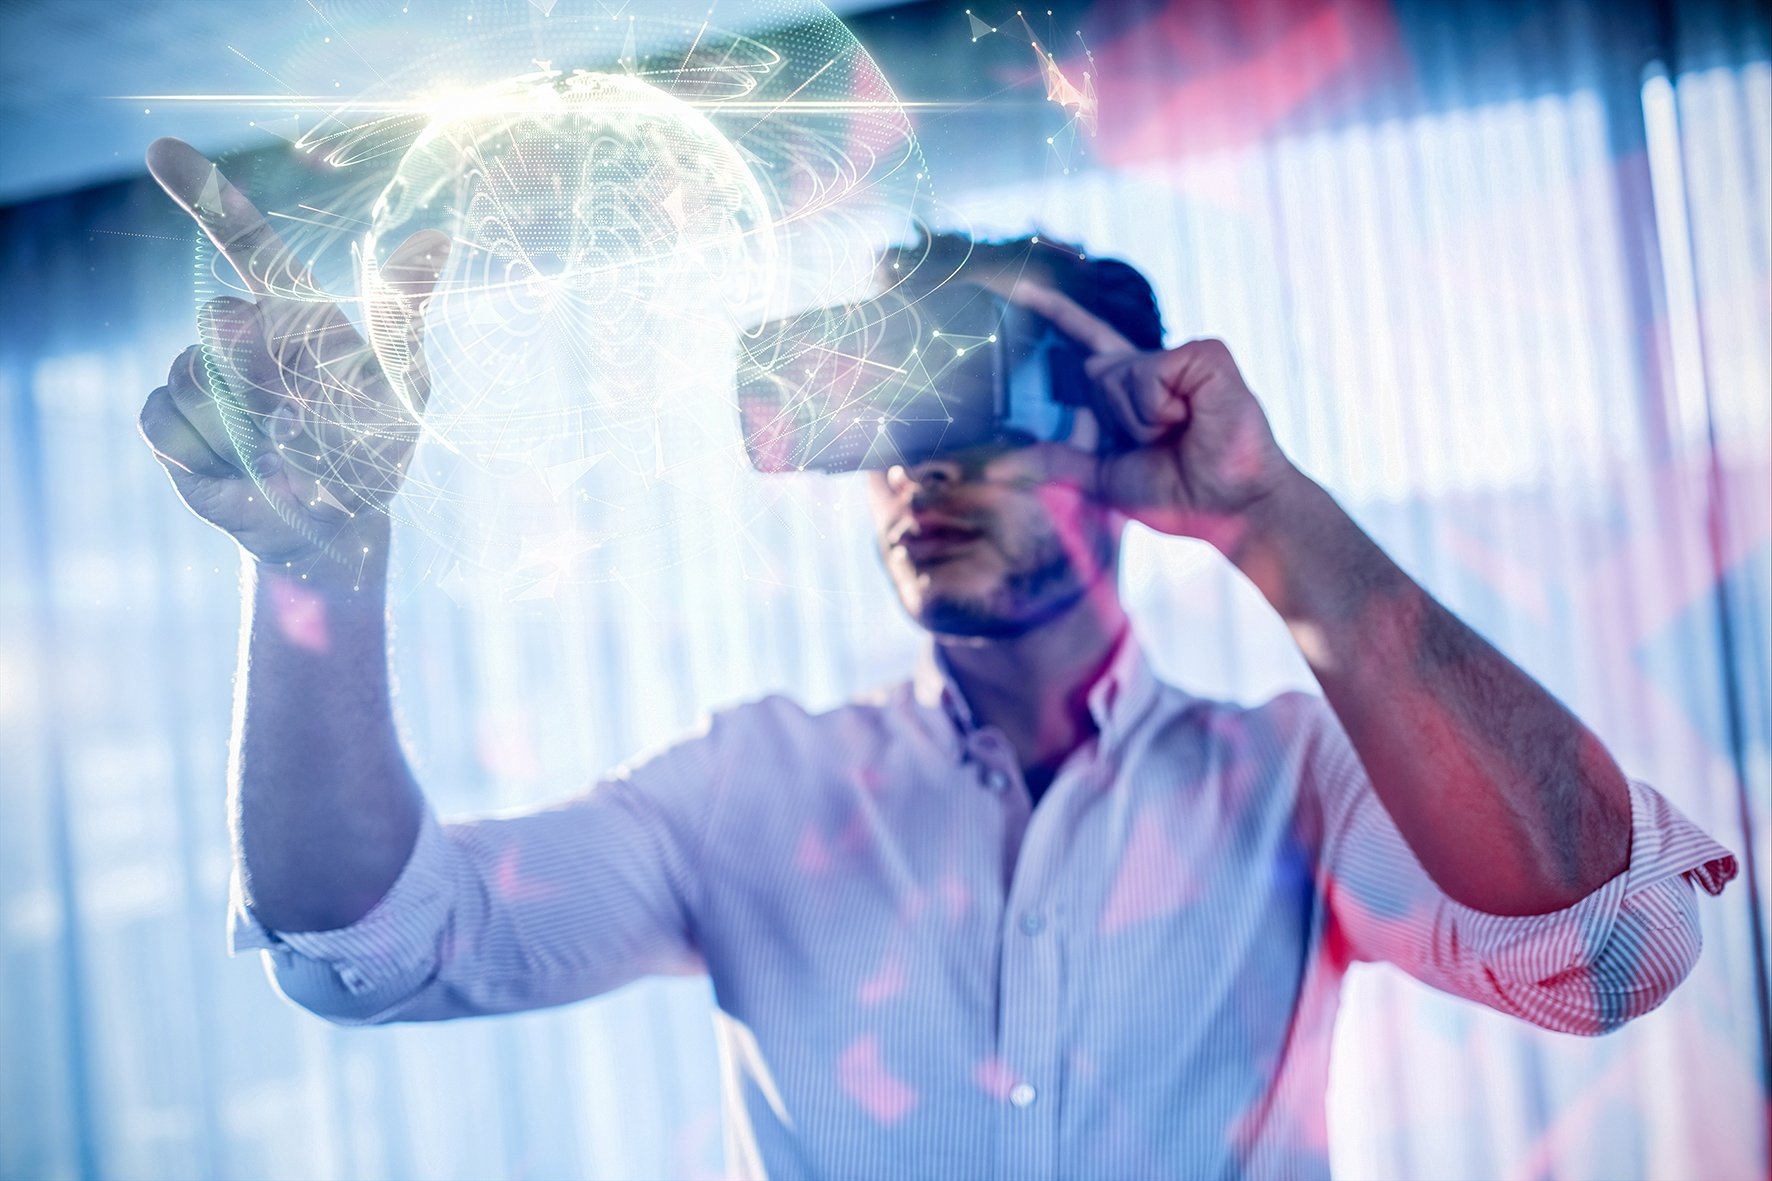 AR & VR in Healthcare Market Expected to Reach $5.1 Billion by 2025 - #GTUSA 3